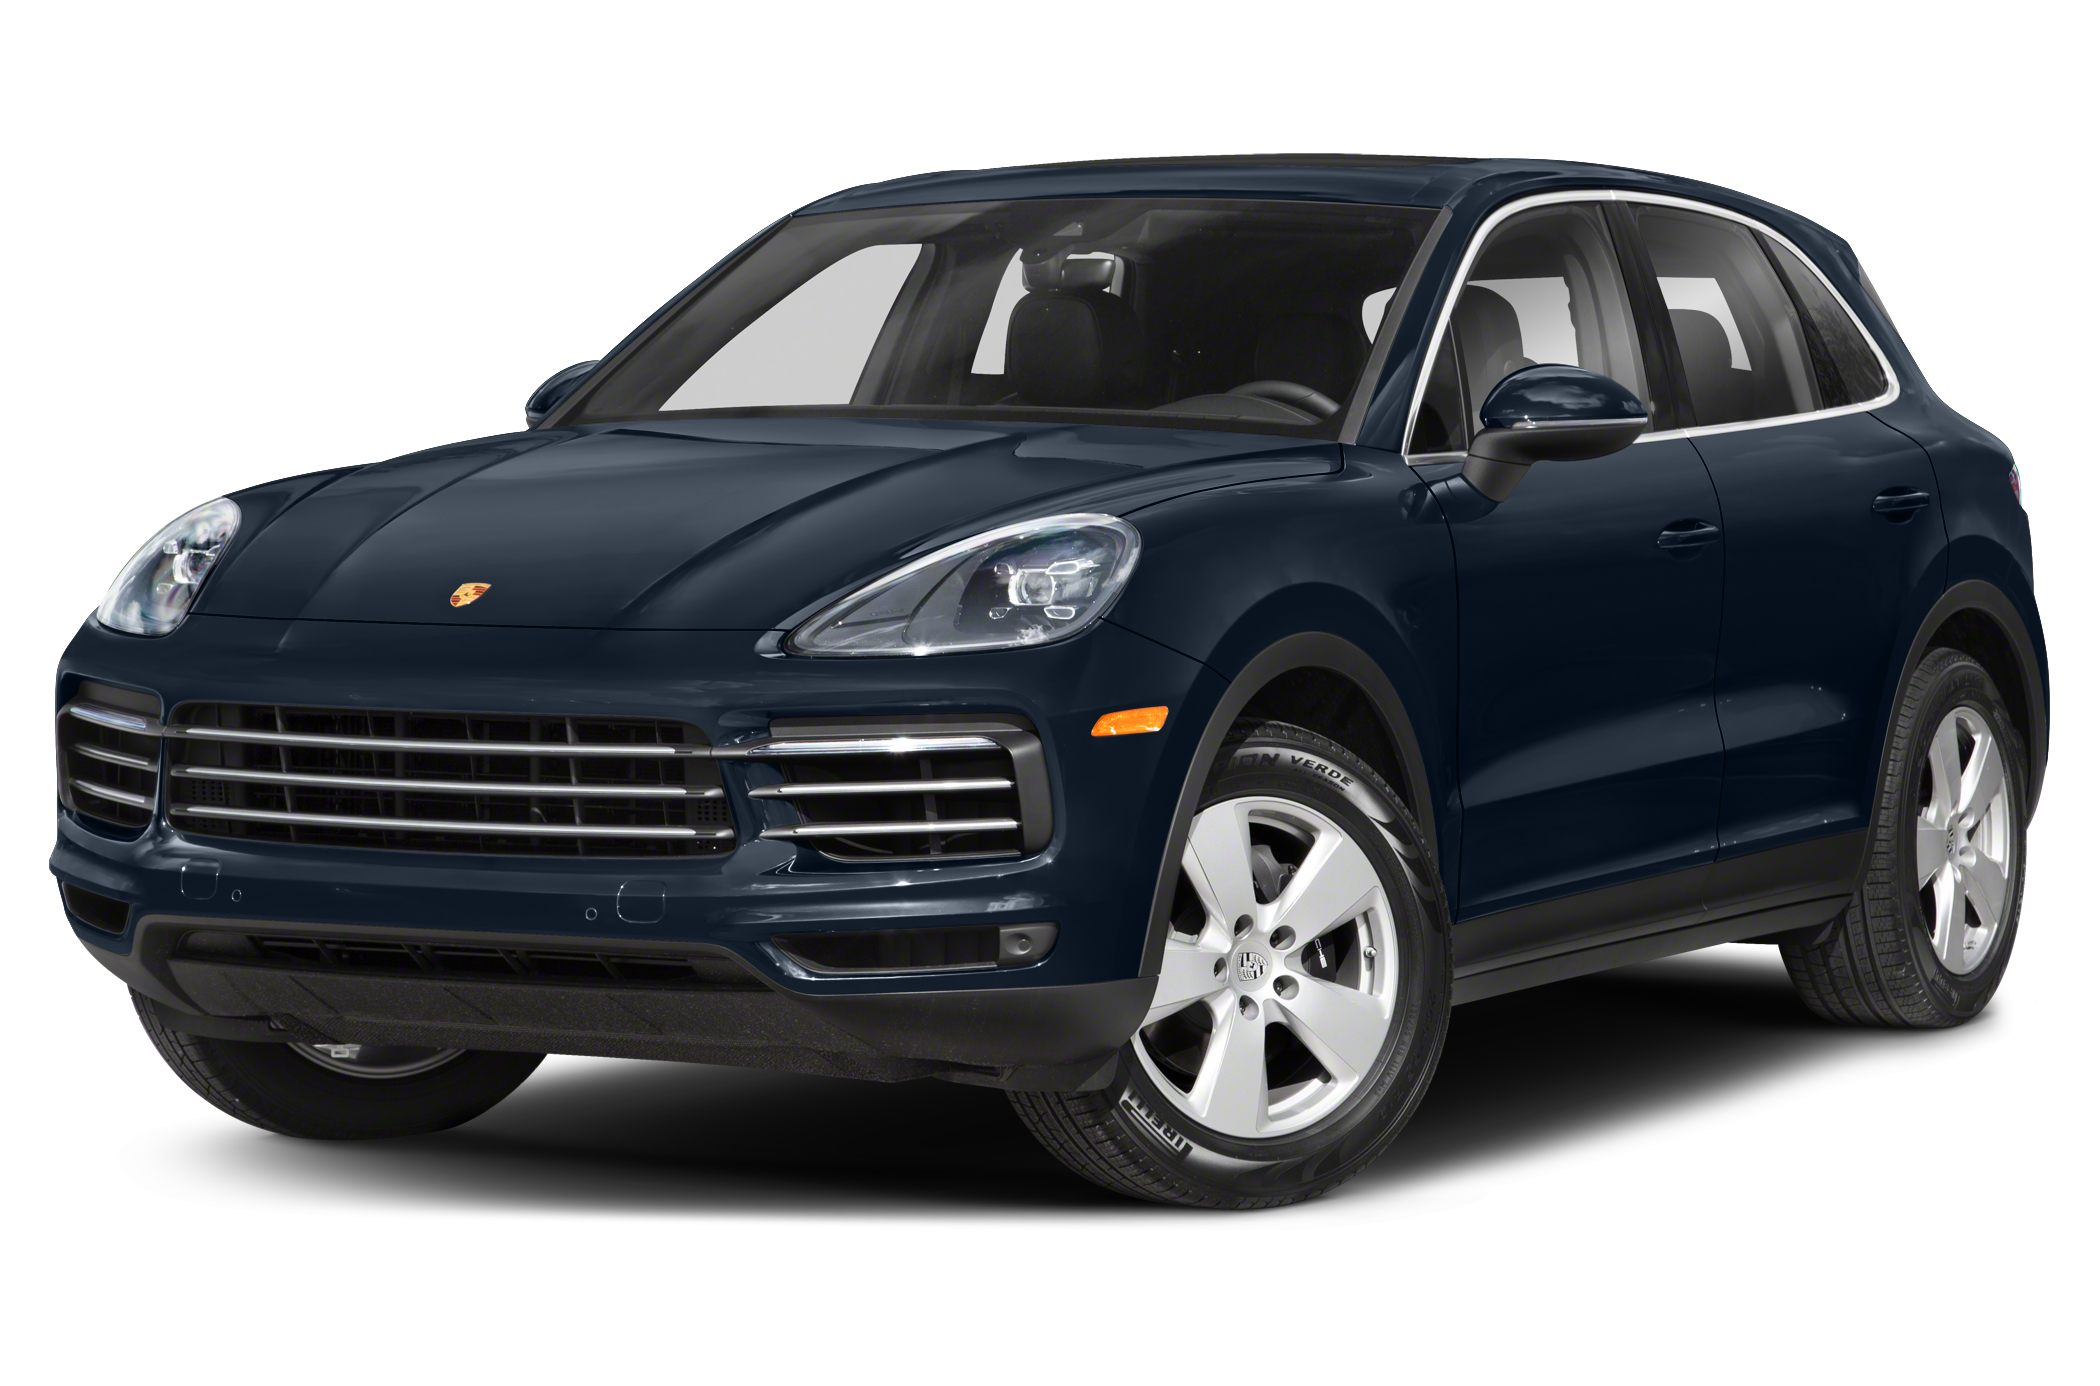 2019 Cayenne Owner Reviews